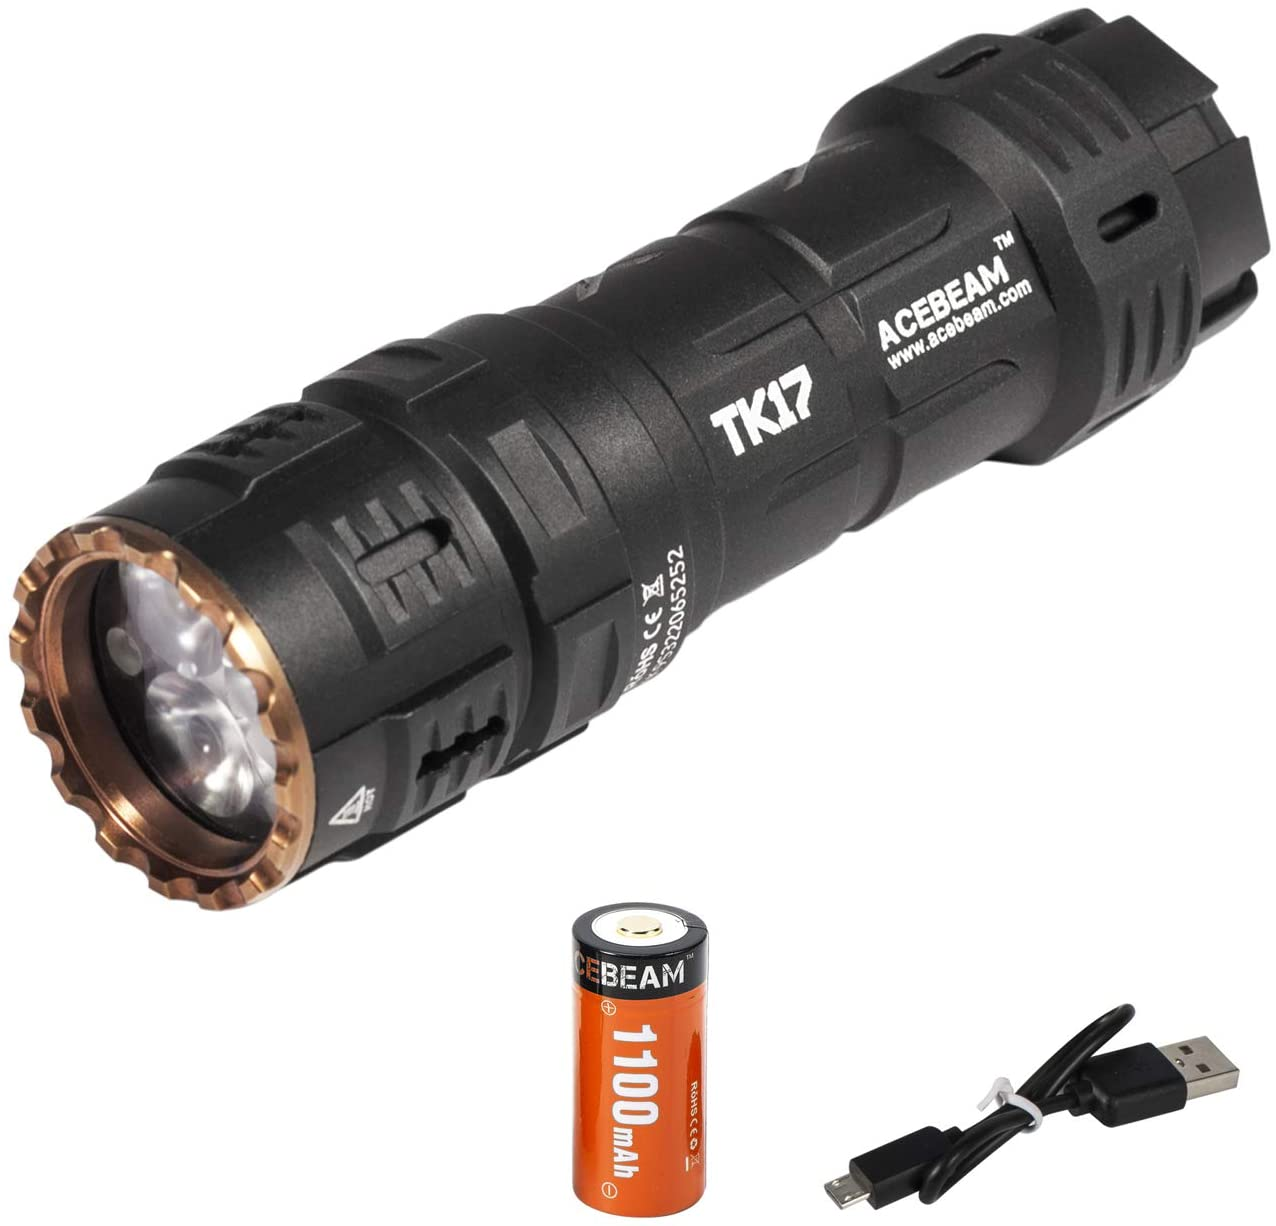 ACEBEAM TK17NIA Compact and Exquisite EDC Flashlight, NICHIA 219C CRI LED Povides more Softer Beam for daily life, Outdoor activities, Photography, etc, Equipped with 18350 USB Rechargeable Battery